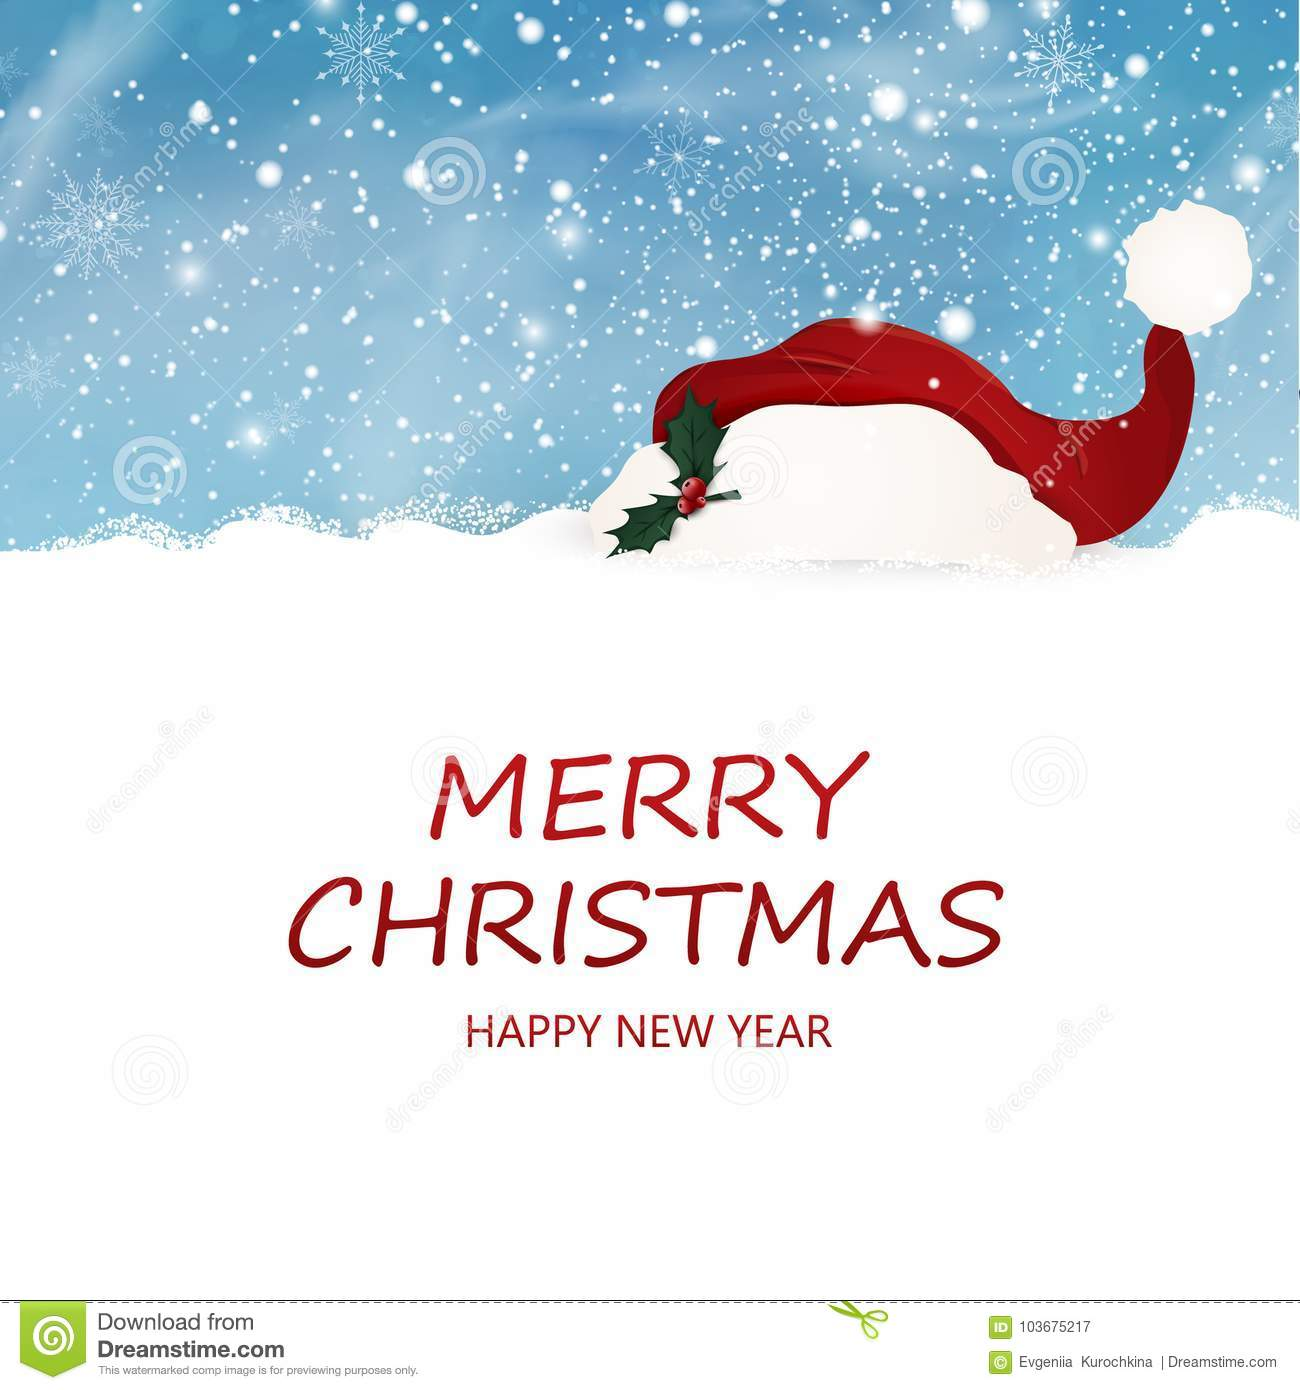 merry christmas happy new year design template for blank sign with falling snow snowflakes christmas red santa hat stock illustration illustration of happy blank 103675217 https www dreamstime com merry christmas happy new year design template blank sign falling snow snowflakes christmas red santa hat merry christmas image103675217